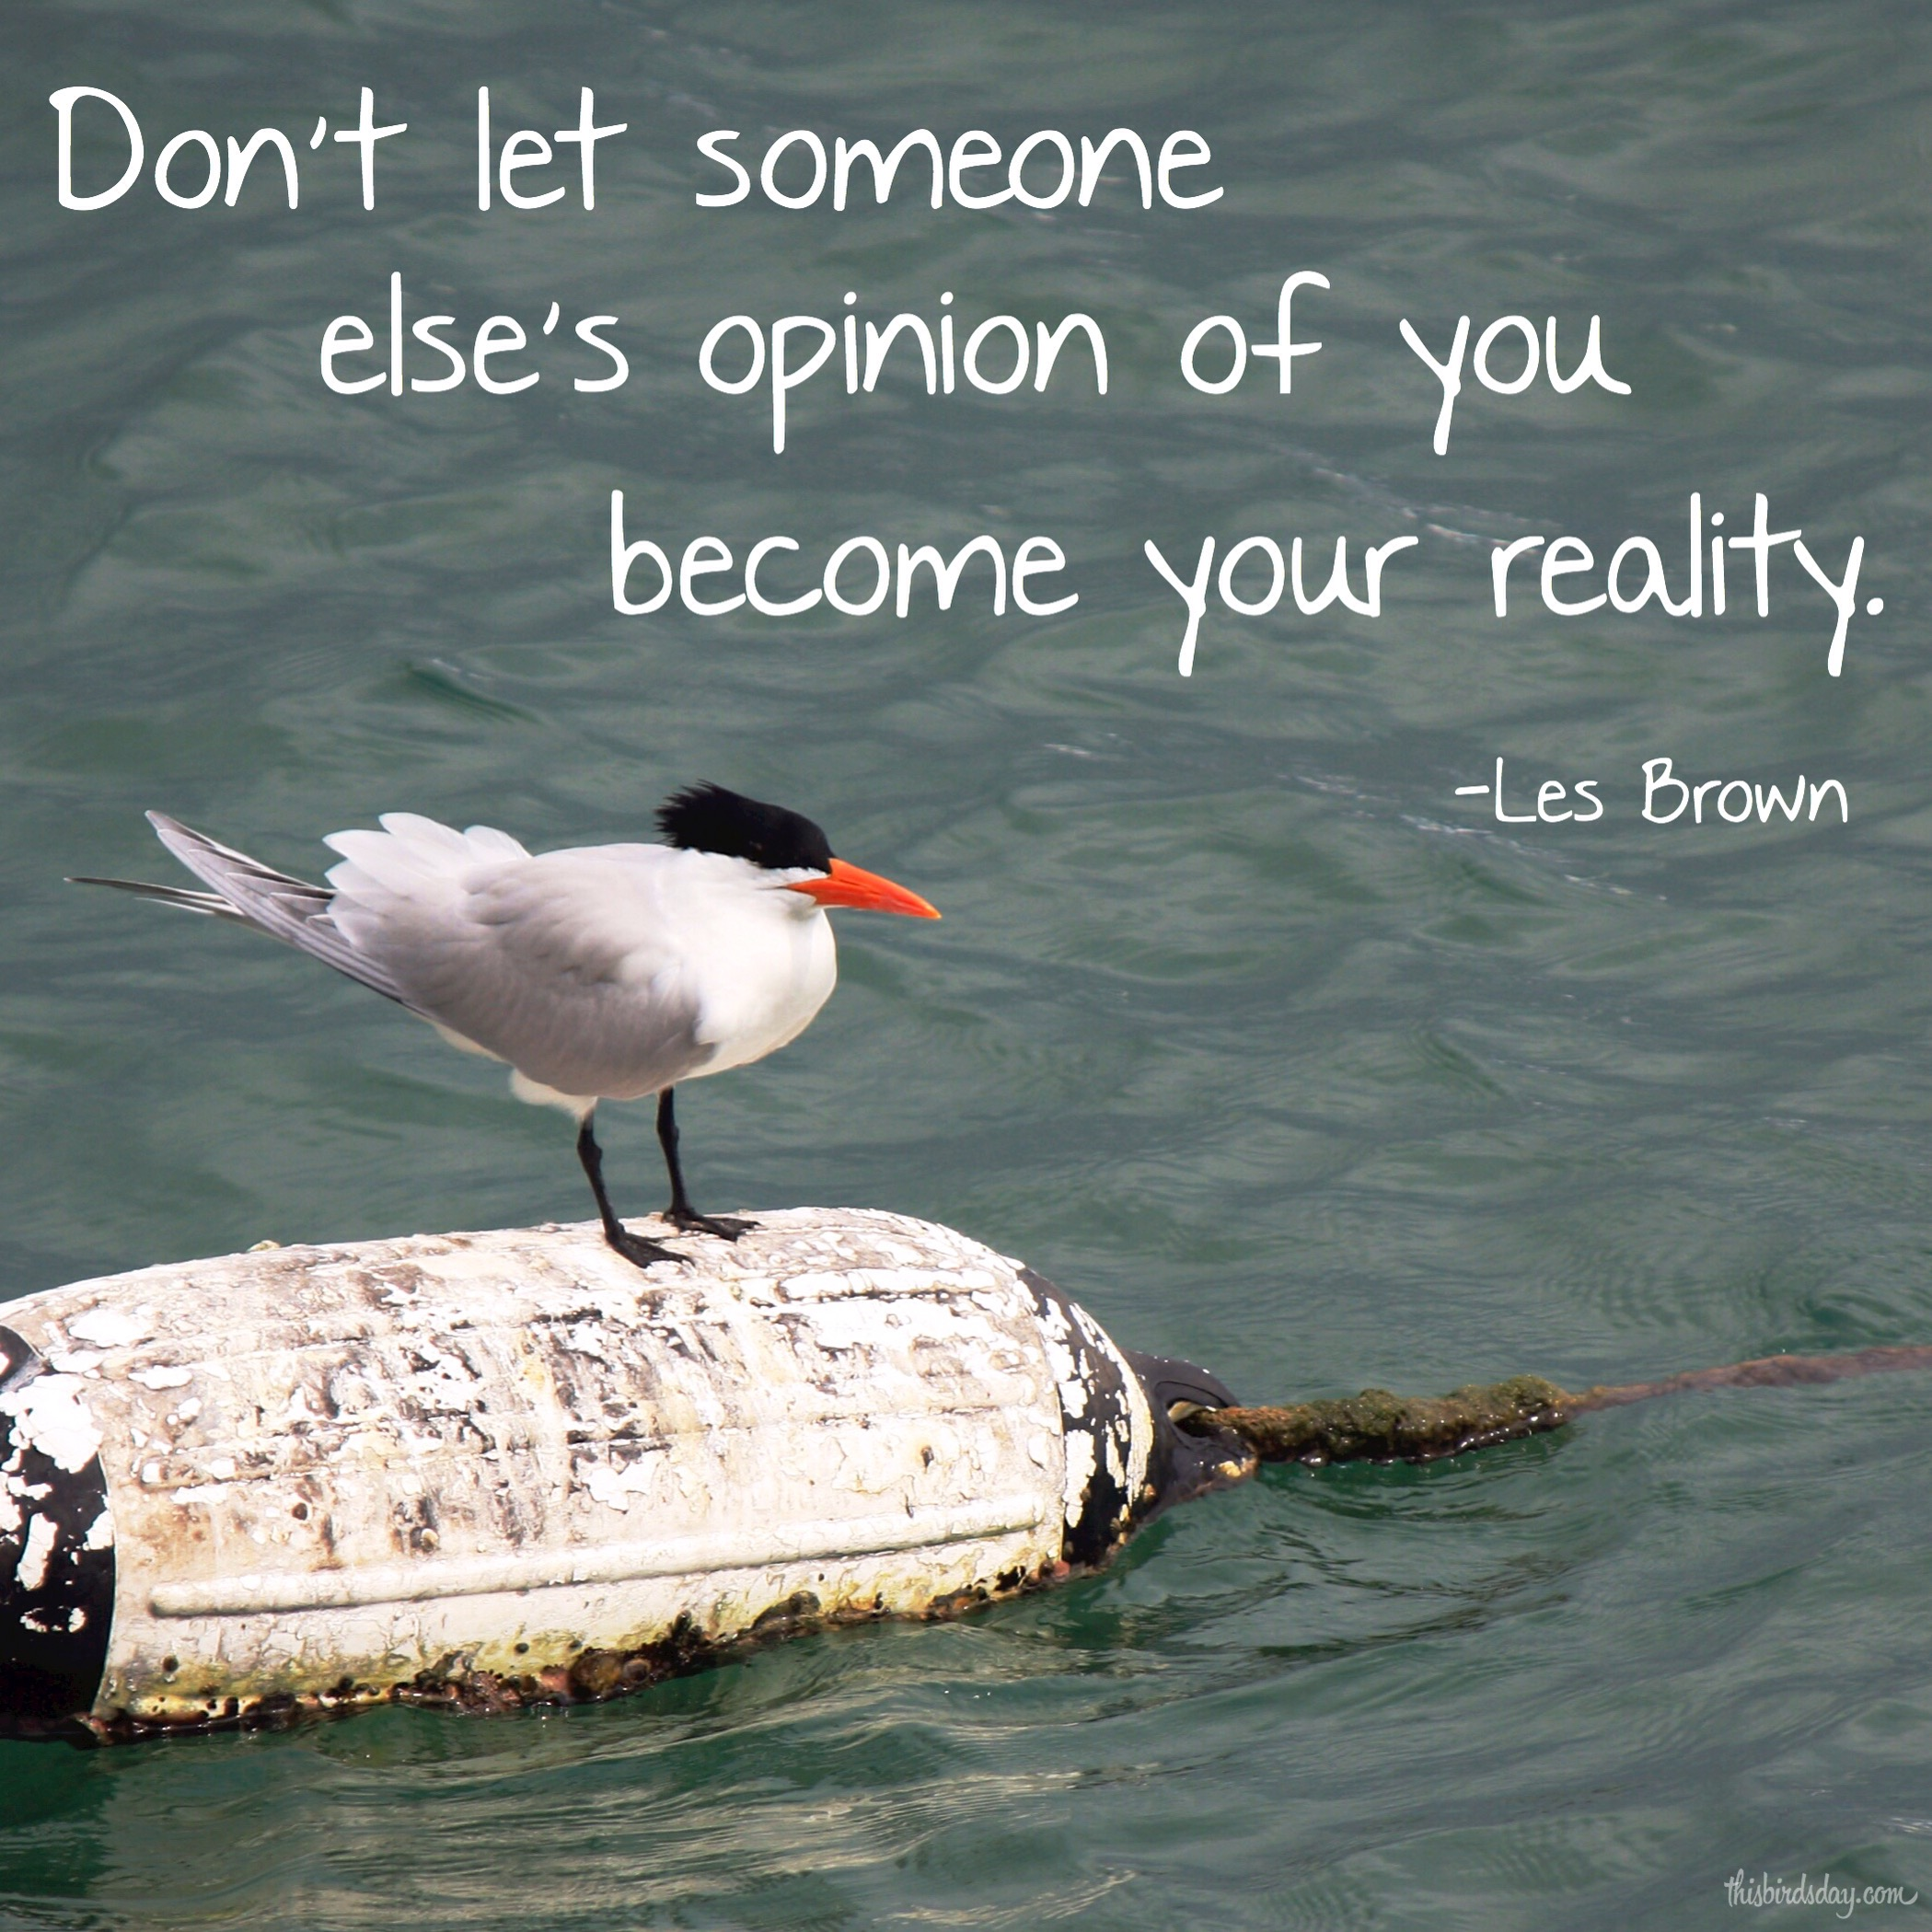 """""""Don't let someone else's opinion of you become your reality."""" Les Brown Photo Copyt=right Sheri Landry"""